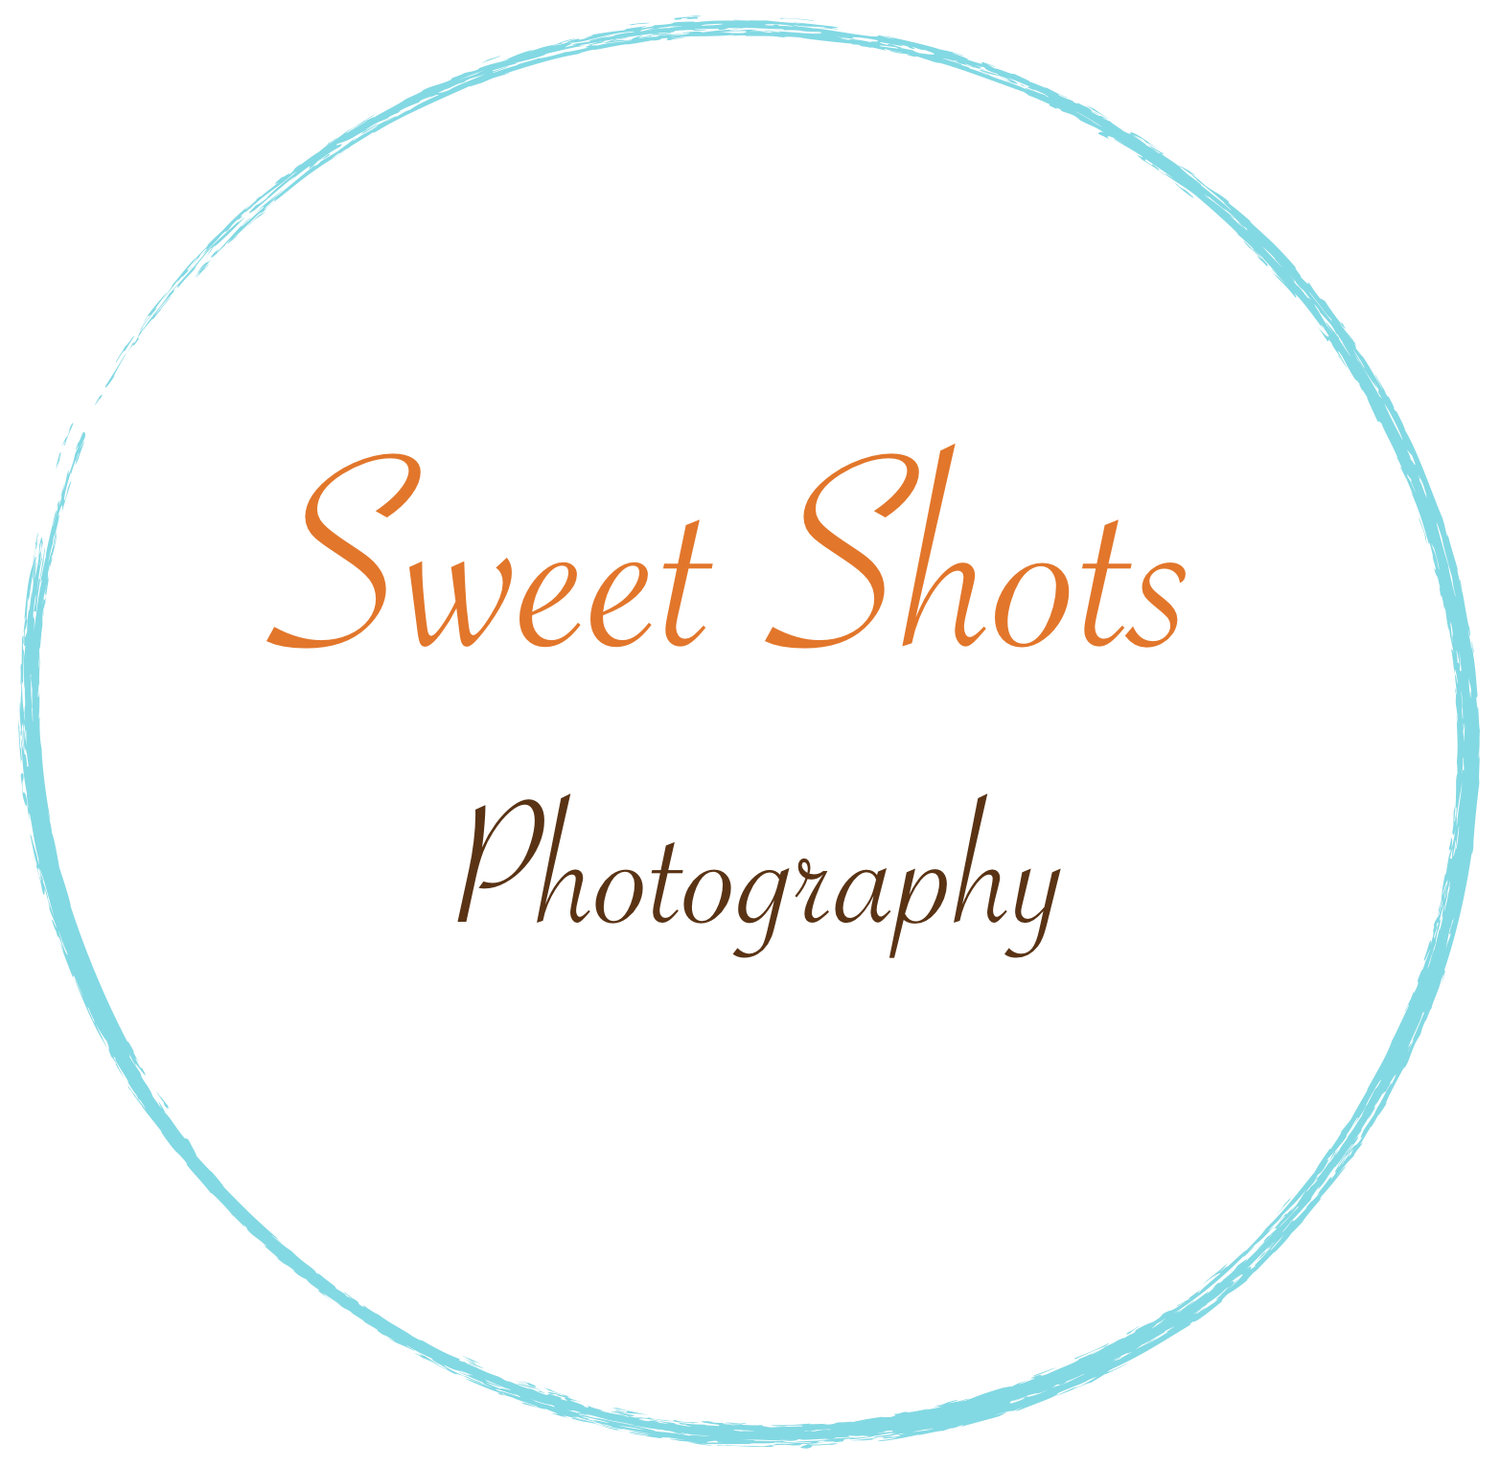 Sweet Shots Photography